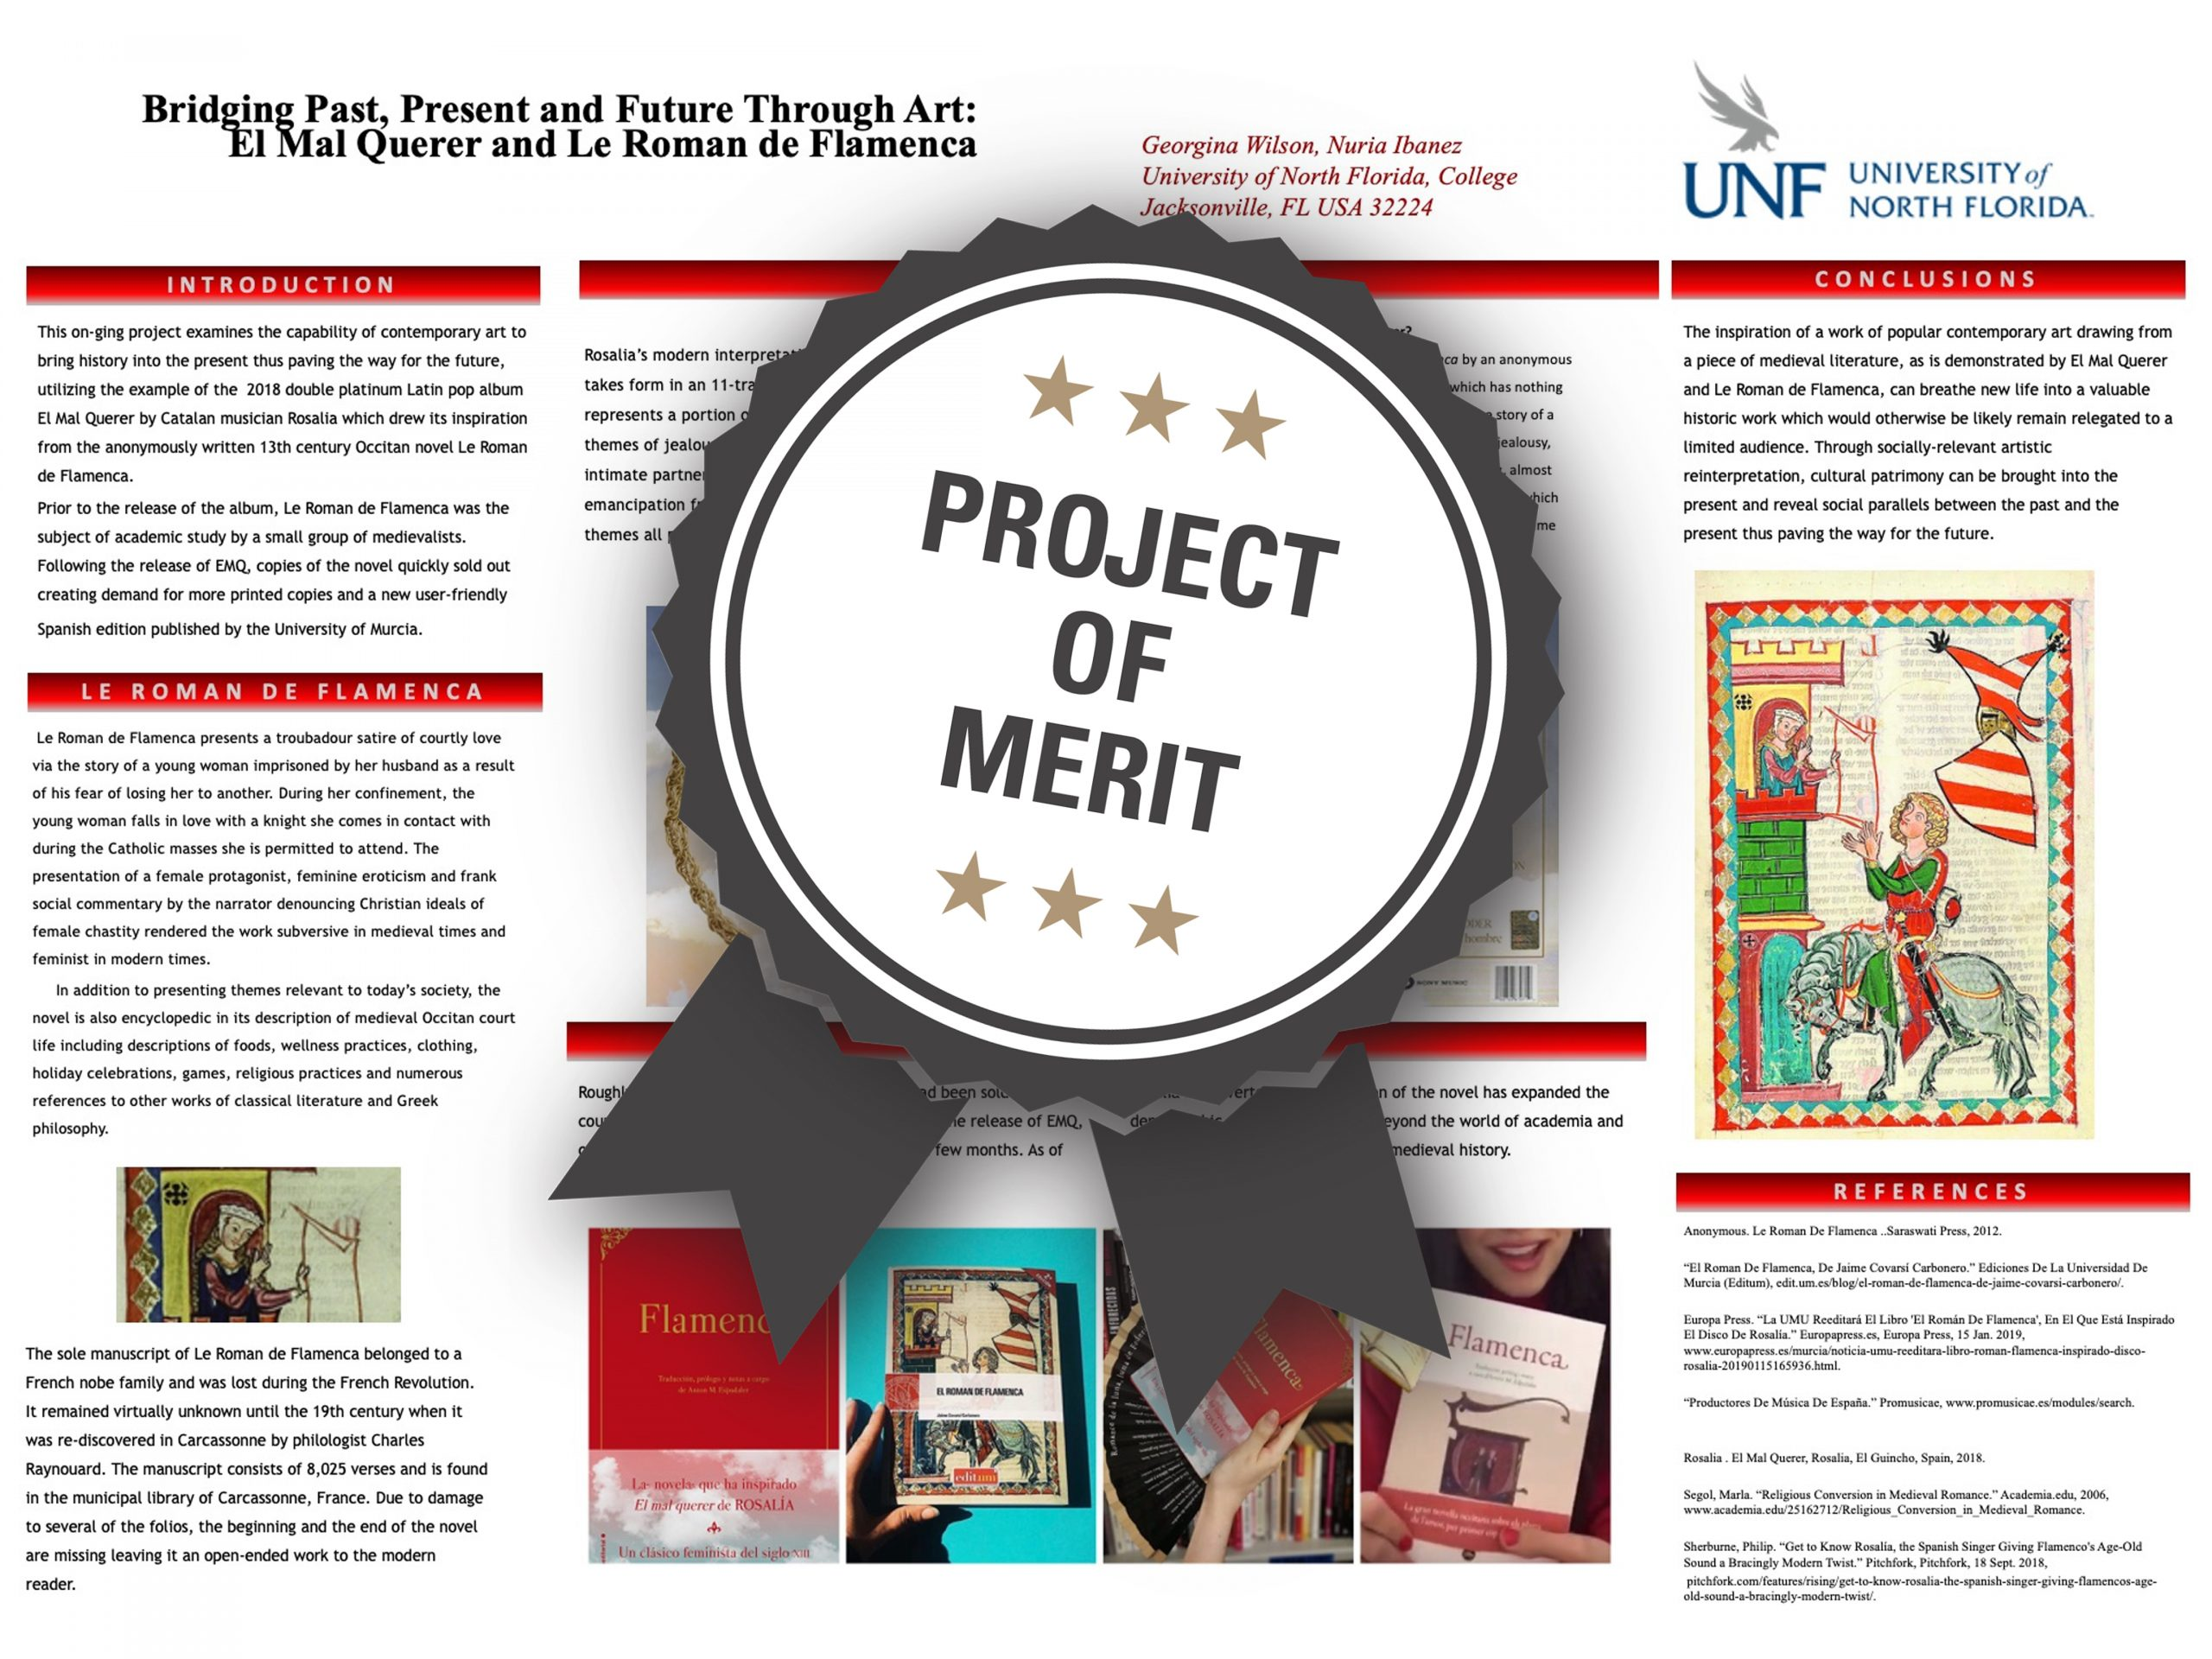 Bridging Past, Present and Future through Art: El Mal Querer and Le Roman de Flamenca Project of Merit poster